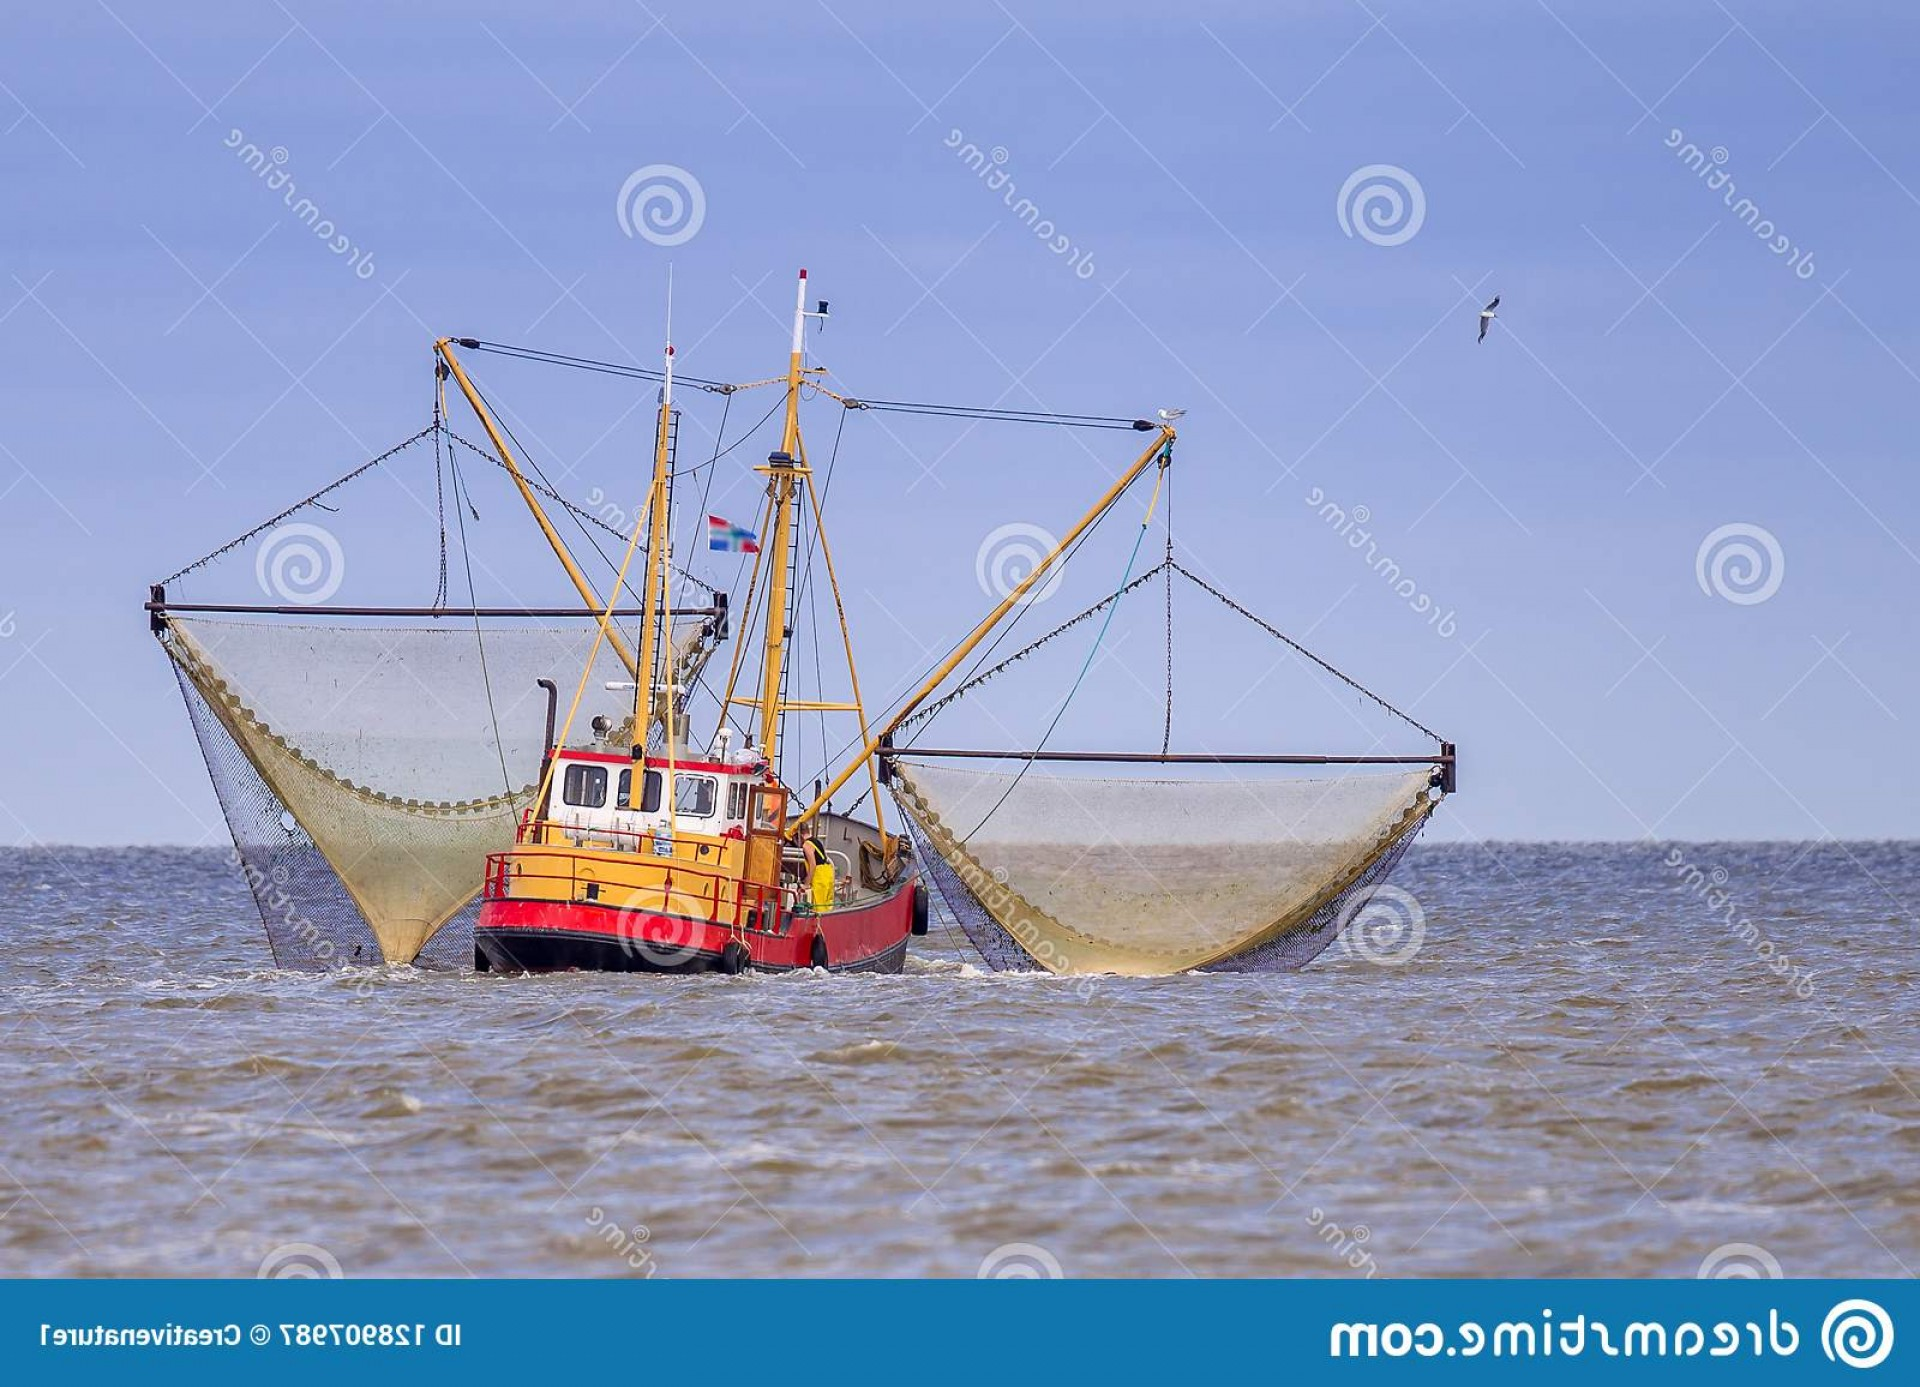 Vector Art Shrimper: Dutch Shrimp Fishing Cutter Vessel Action Wadden Sea Image